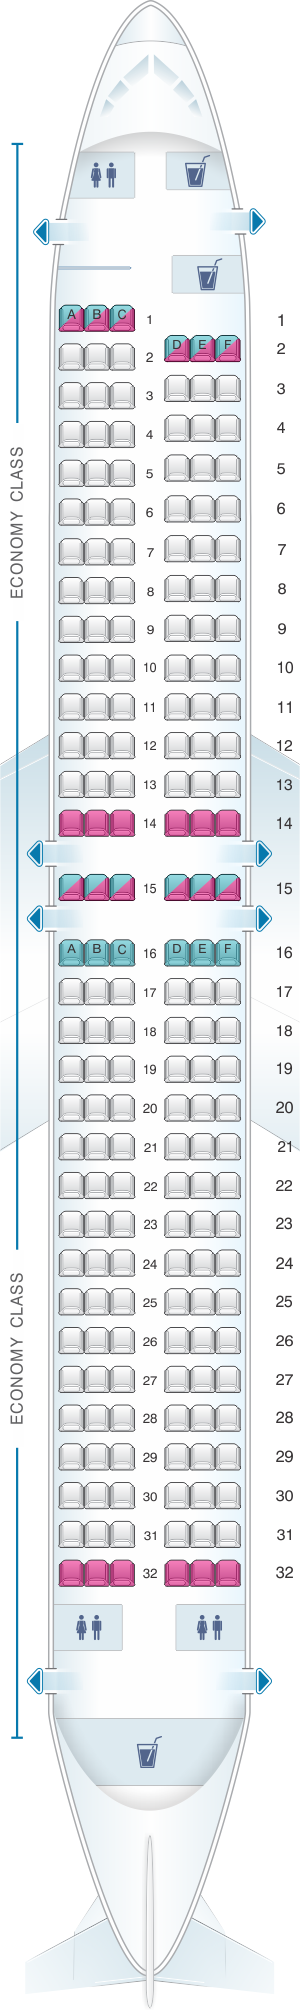 Seat map for TAROM Boeing B737 800